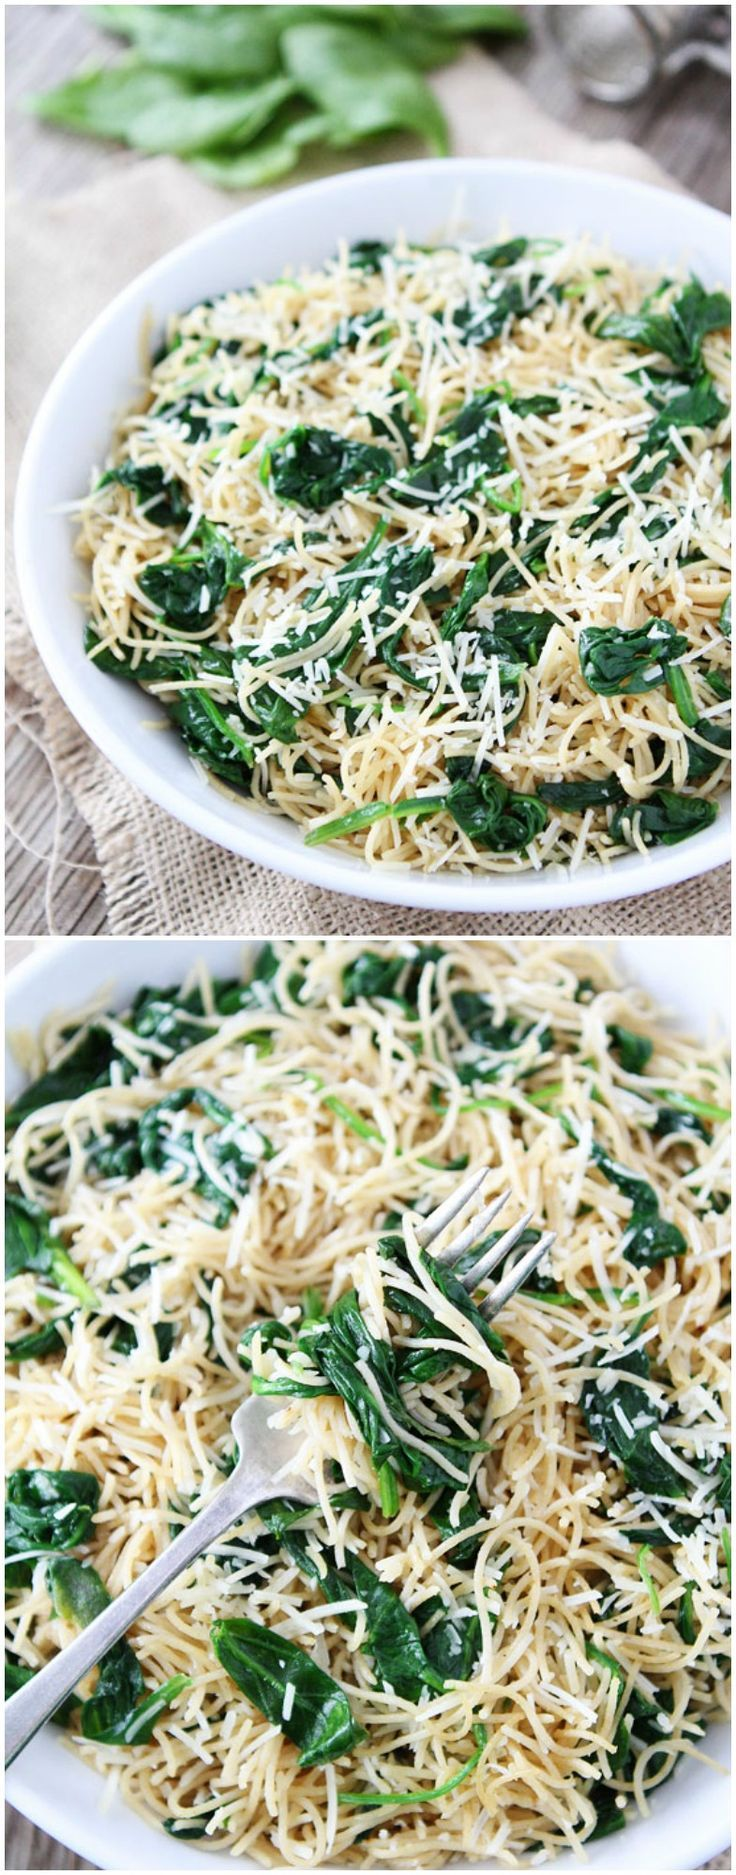 5-Ingredient Spinach Parmesan Pasta Recipe on twopeasandtheirpo… Love this quick and easy pasta dish!